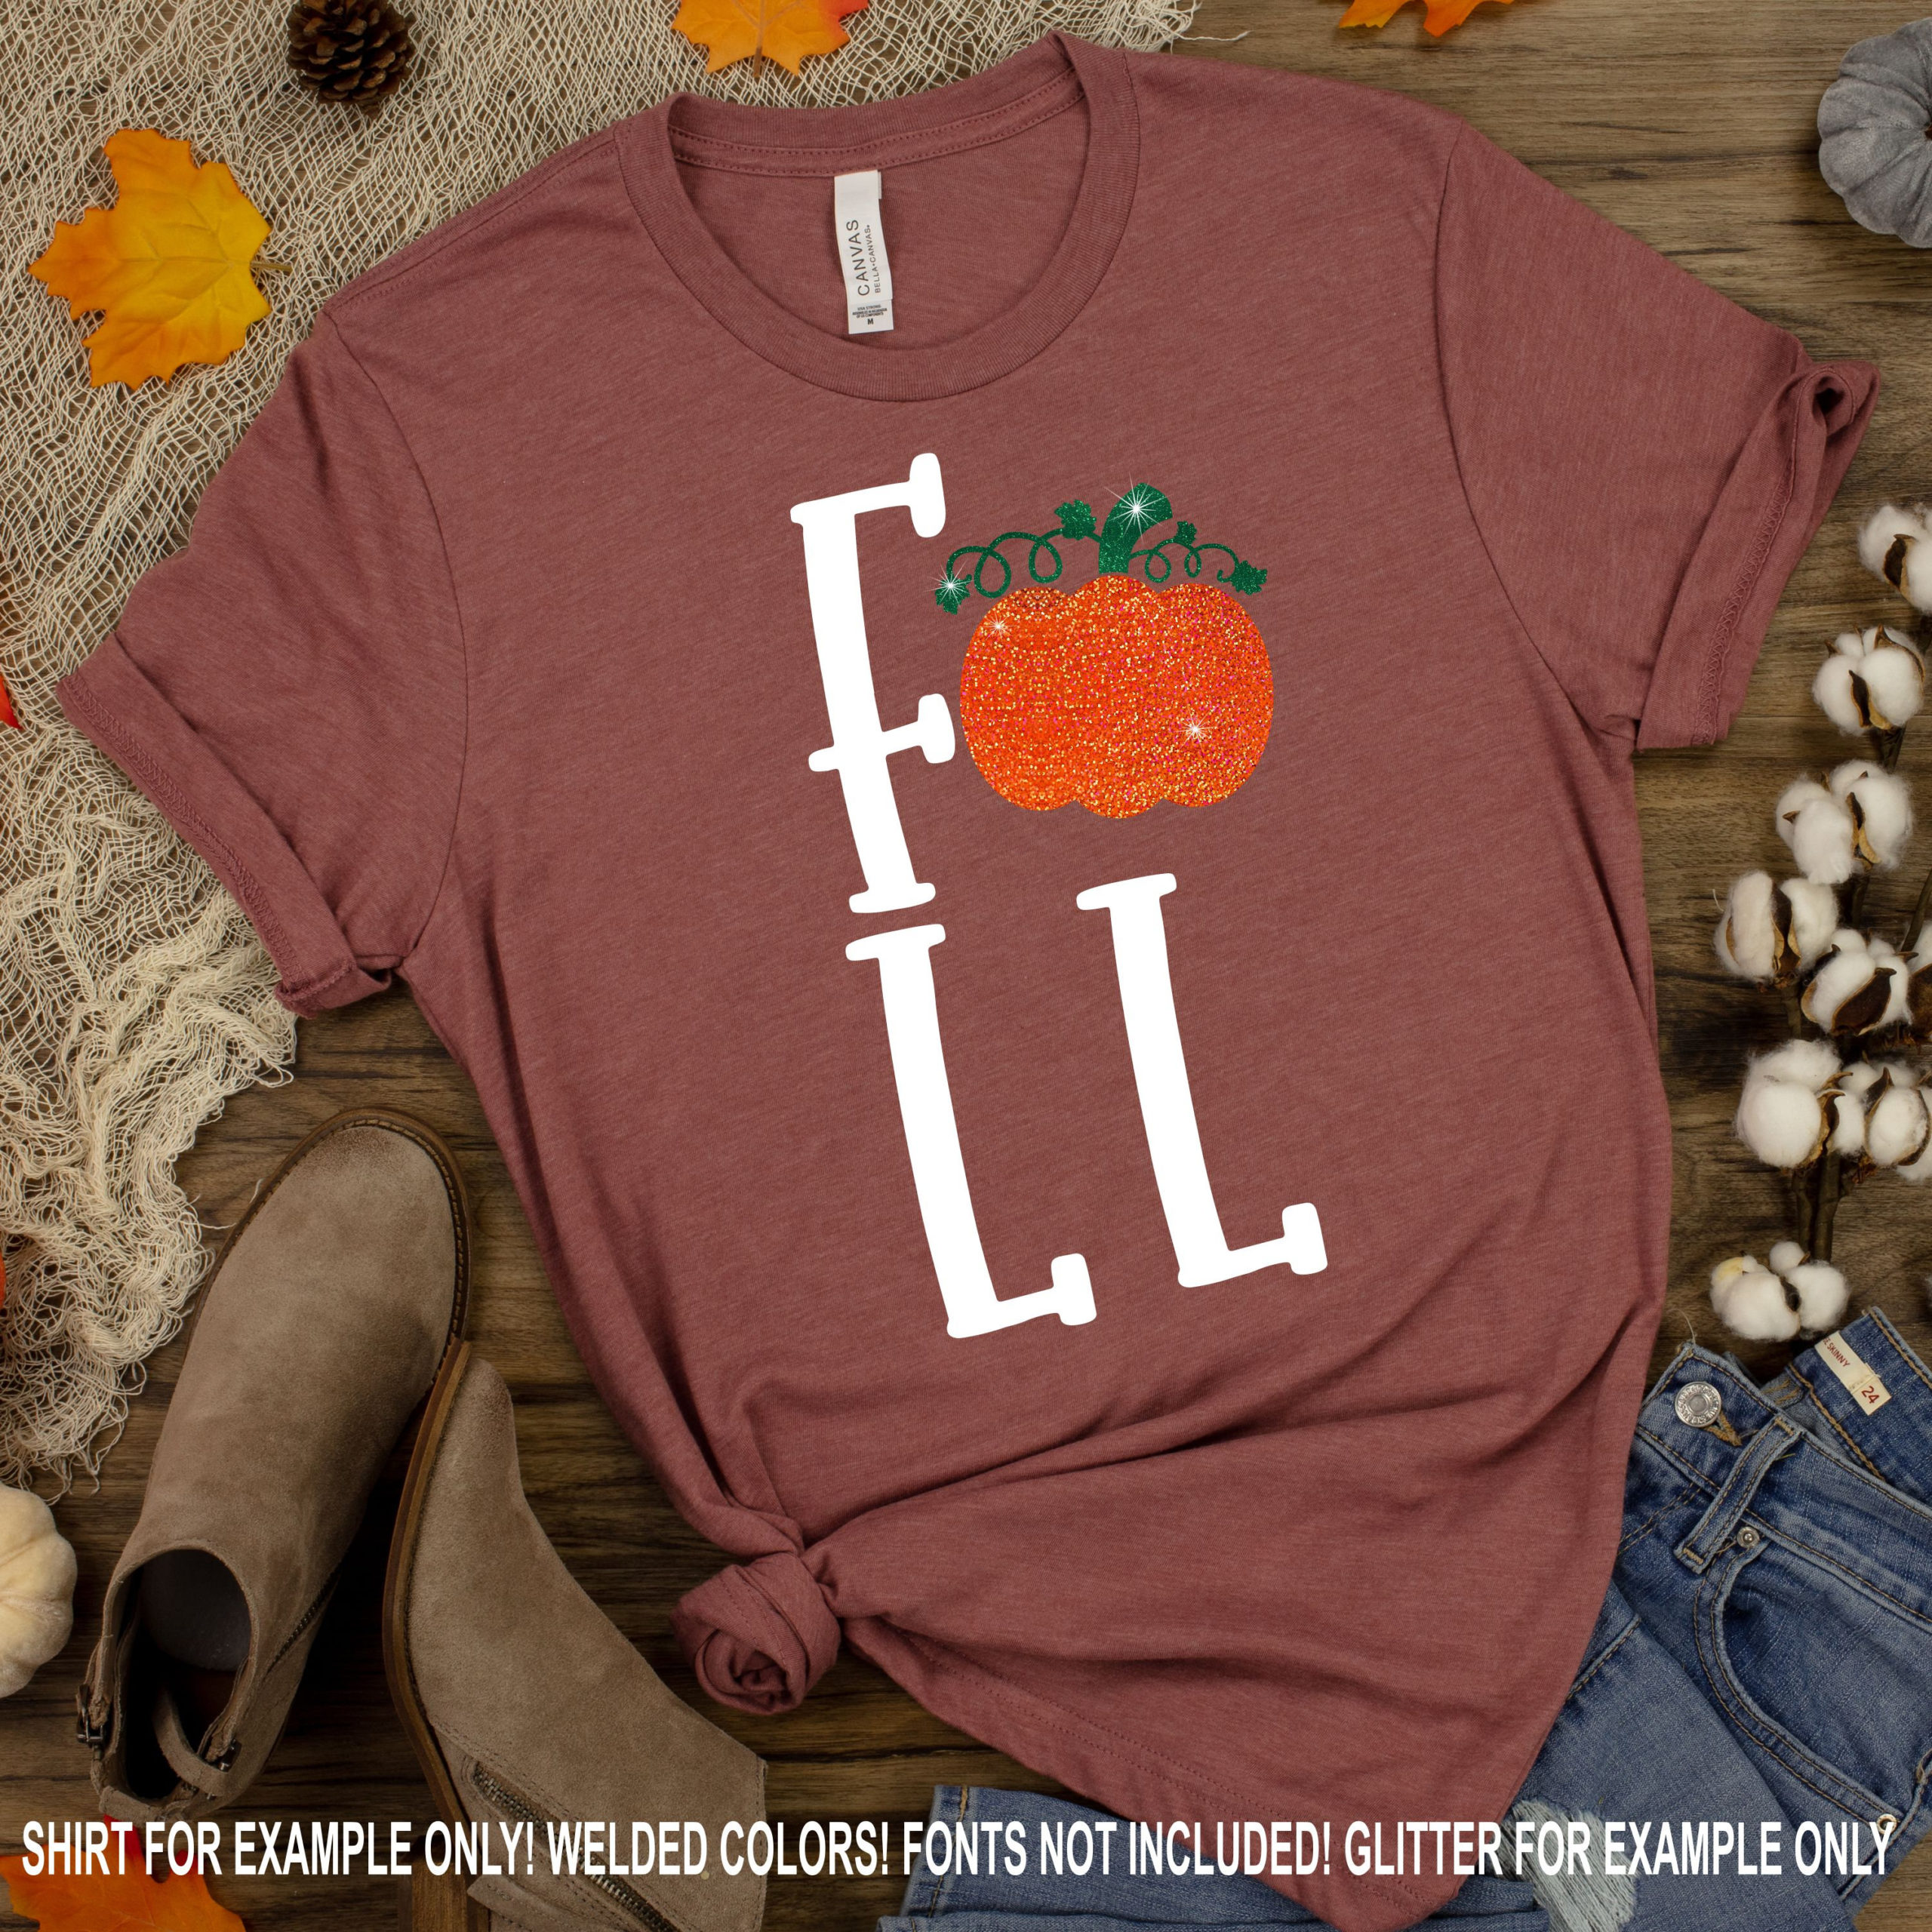 Fall-pumpkin-svgpumpkin-svg-funny-fall-svg-fall-svg-pumpkin-love-svg-thanksgiving-cut-files-cut-files-cricut-svgsvg-for-mobile-5f72196c